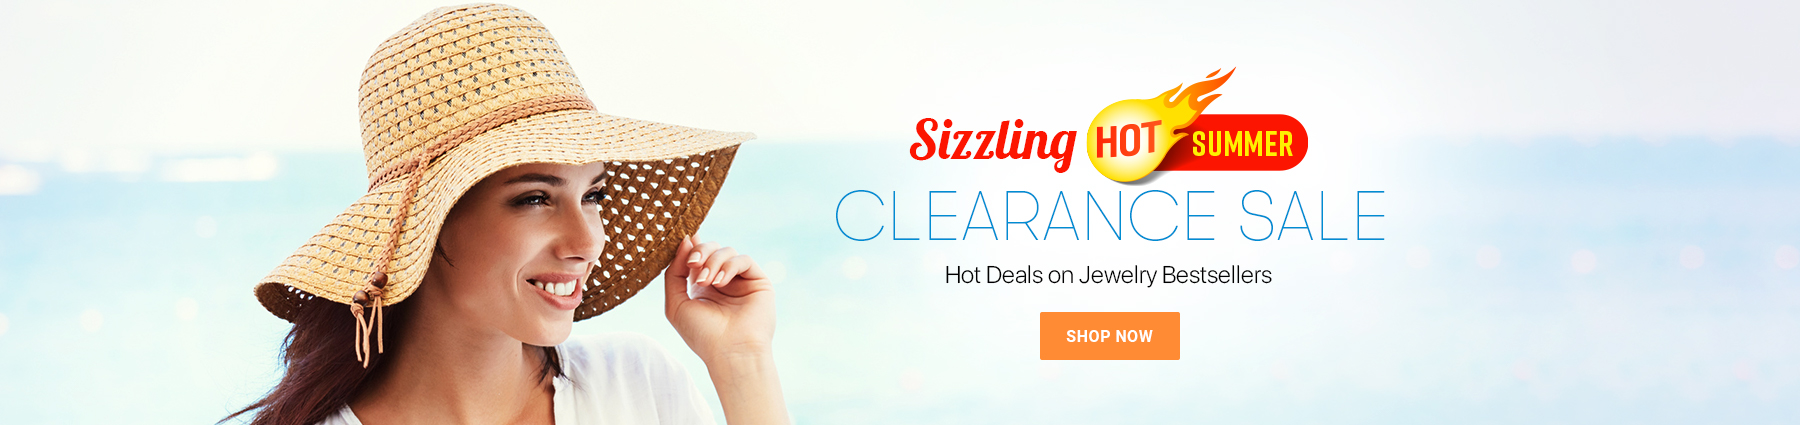 Sizzling Hot Summer Clearance Sale